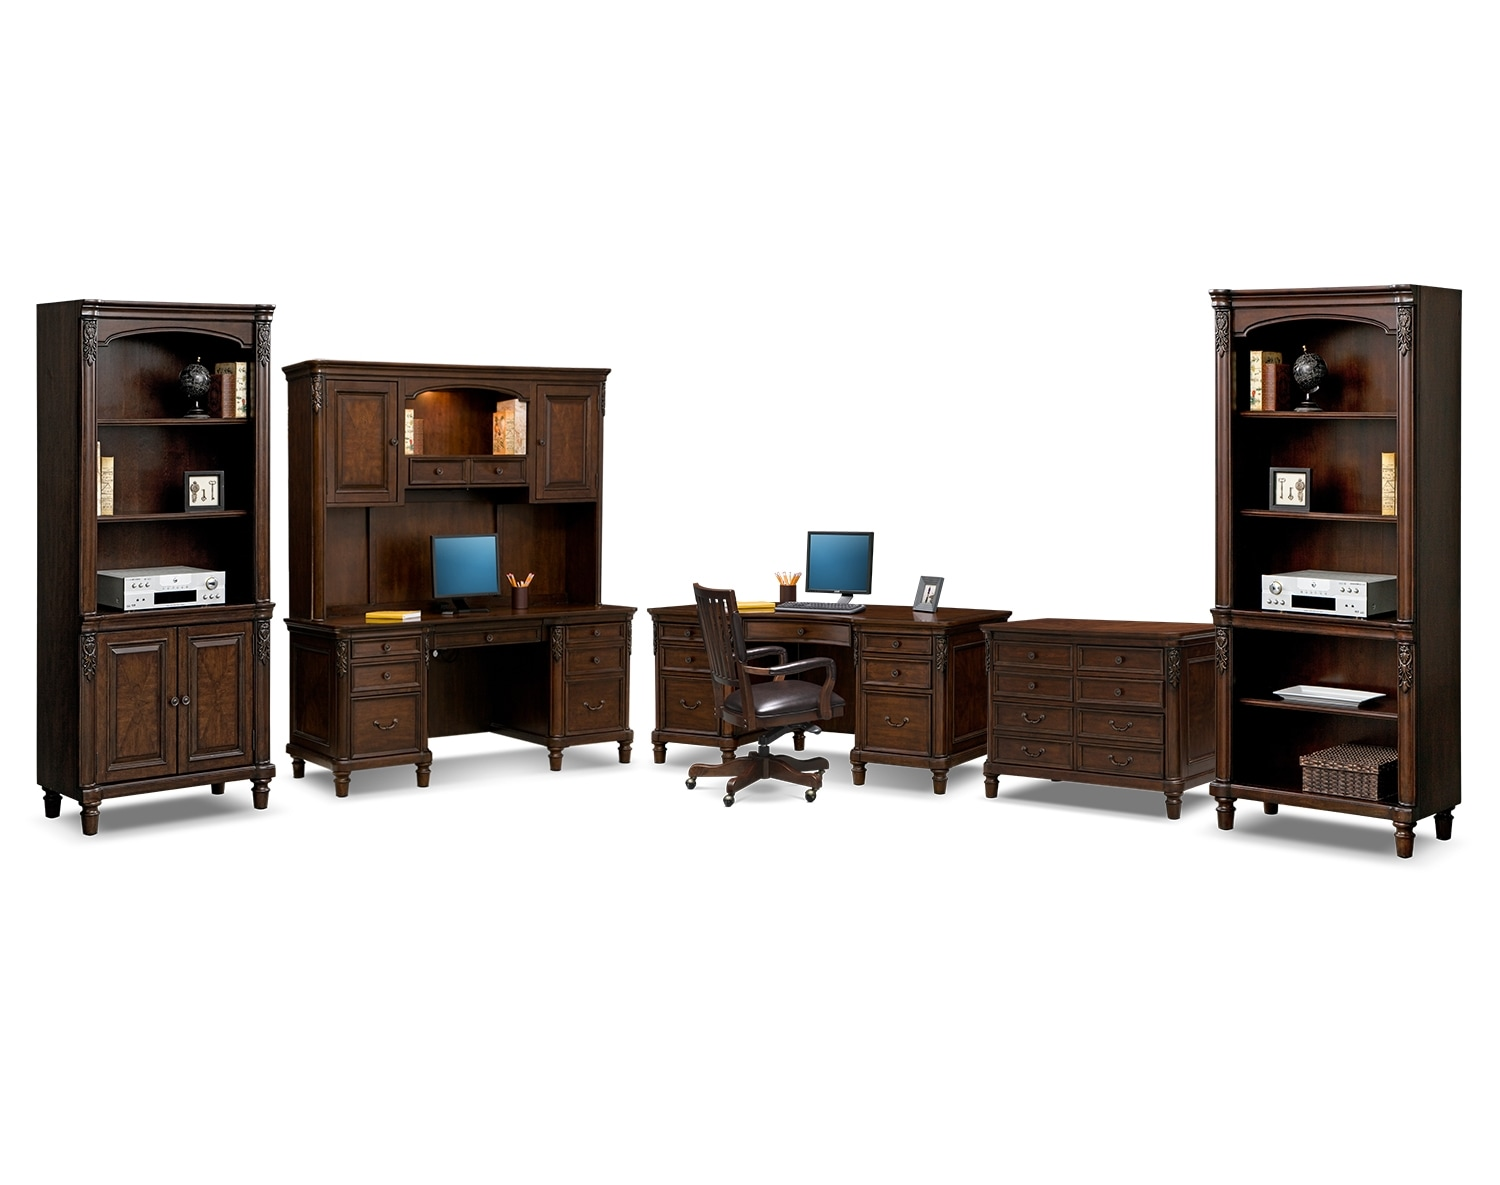 The Ashland Collection American Signature Furniture